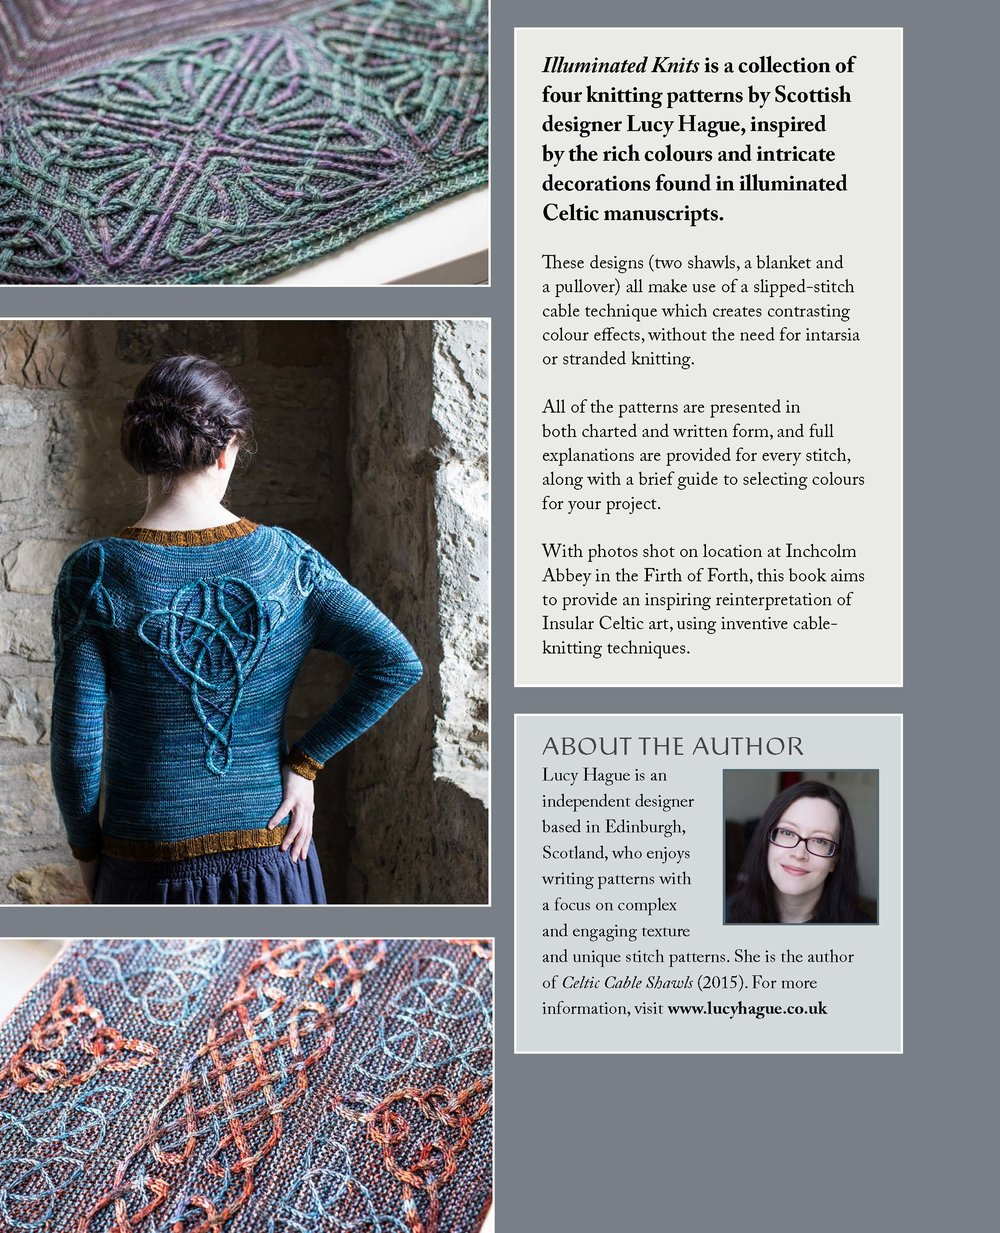 Illuminated-Knits-v1.0-COVER_Page_4.jpg